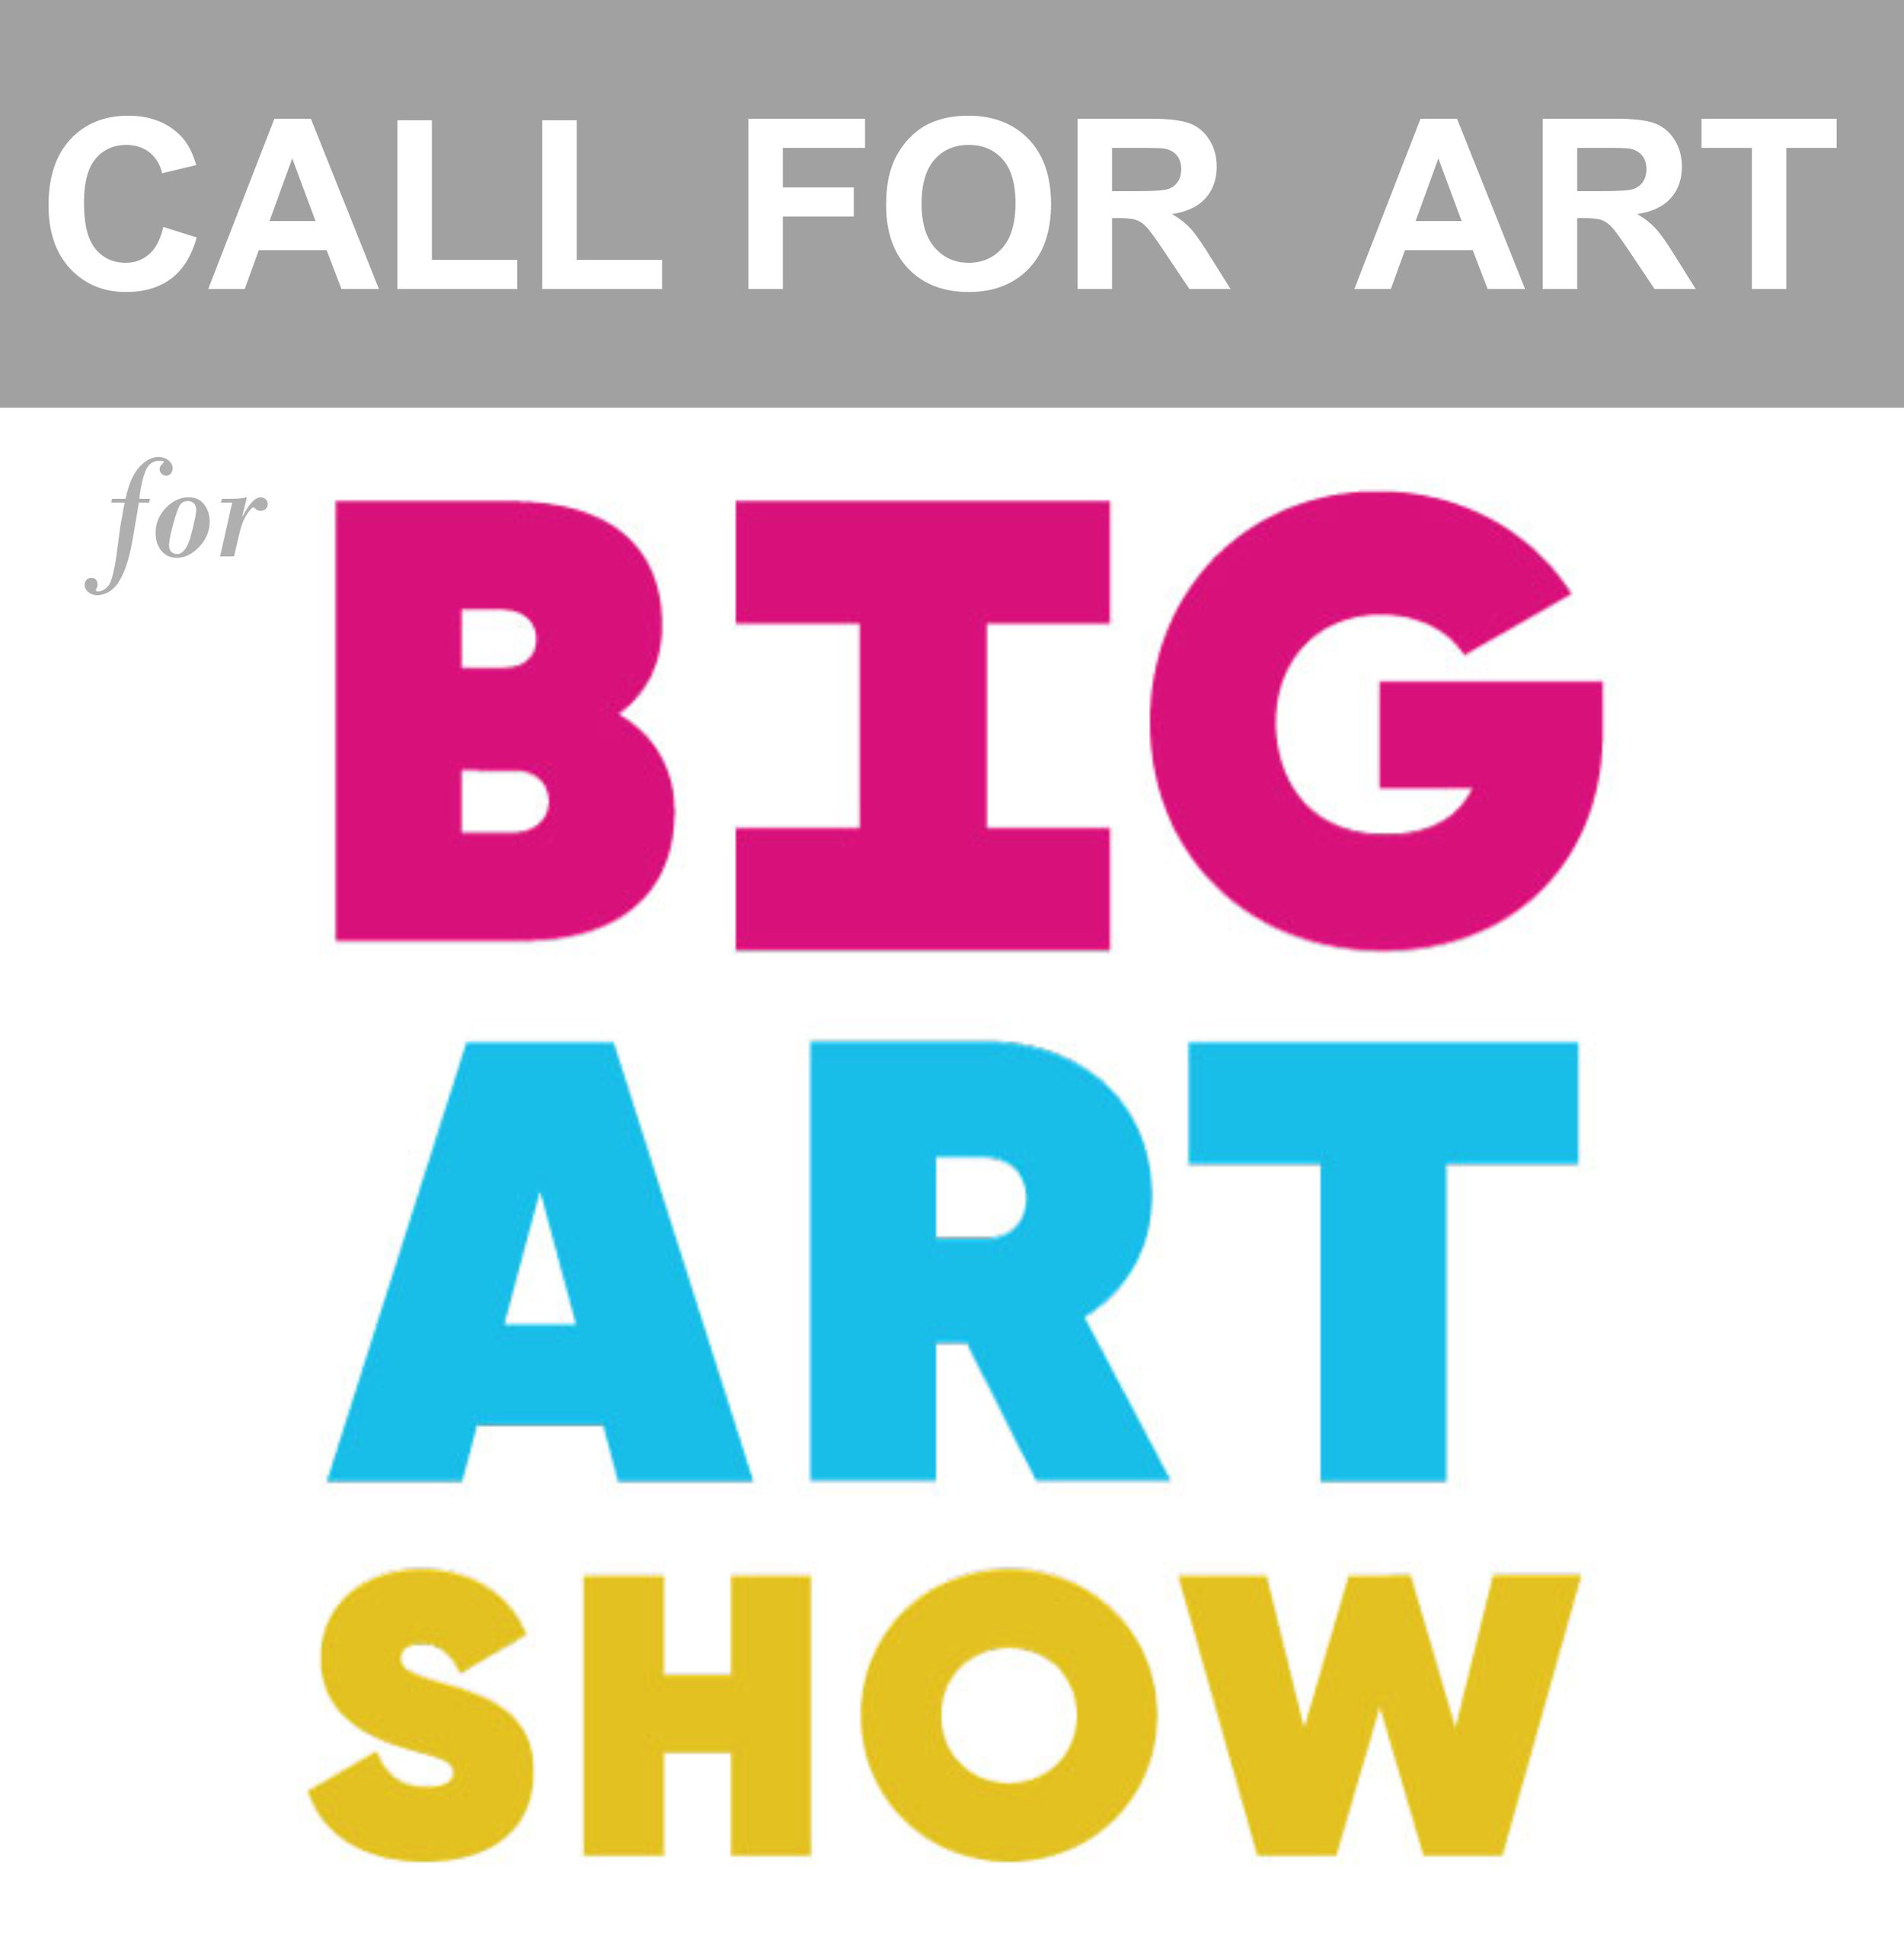 BIG ART SHOW_call for artx-LOGO-2019.jpg